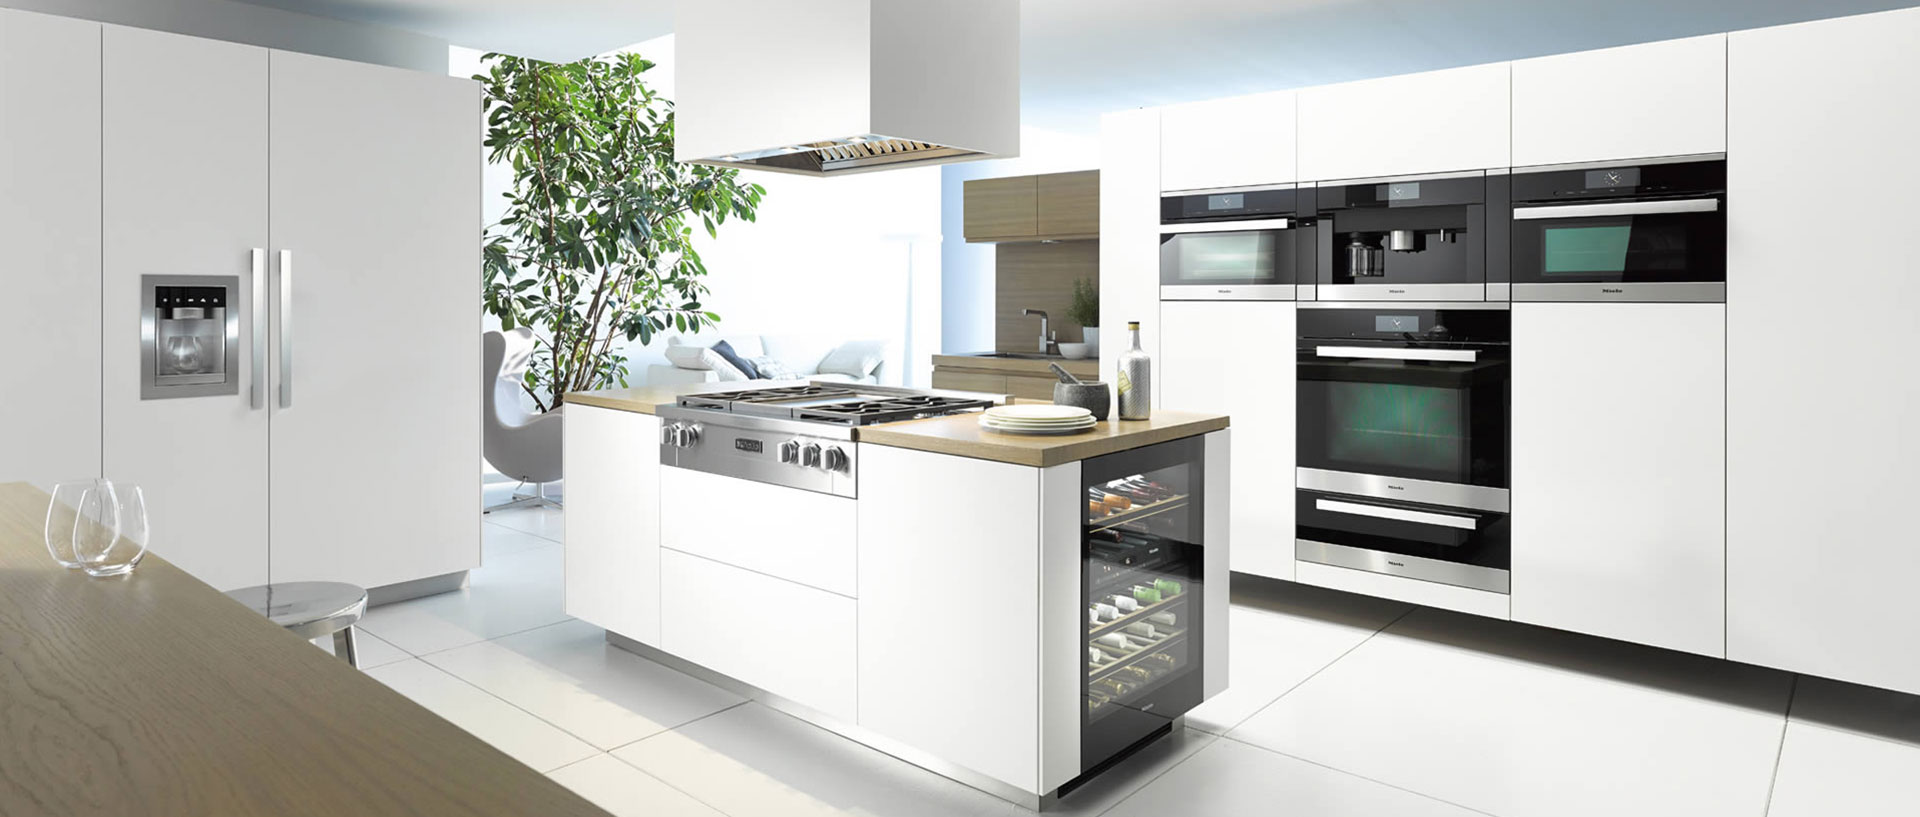 Similar To Bosch, Miele Is Known For German Engineered High Quality  Appliances That Offer Durable And Reliable Kitchen Appliances With  High Performance ...